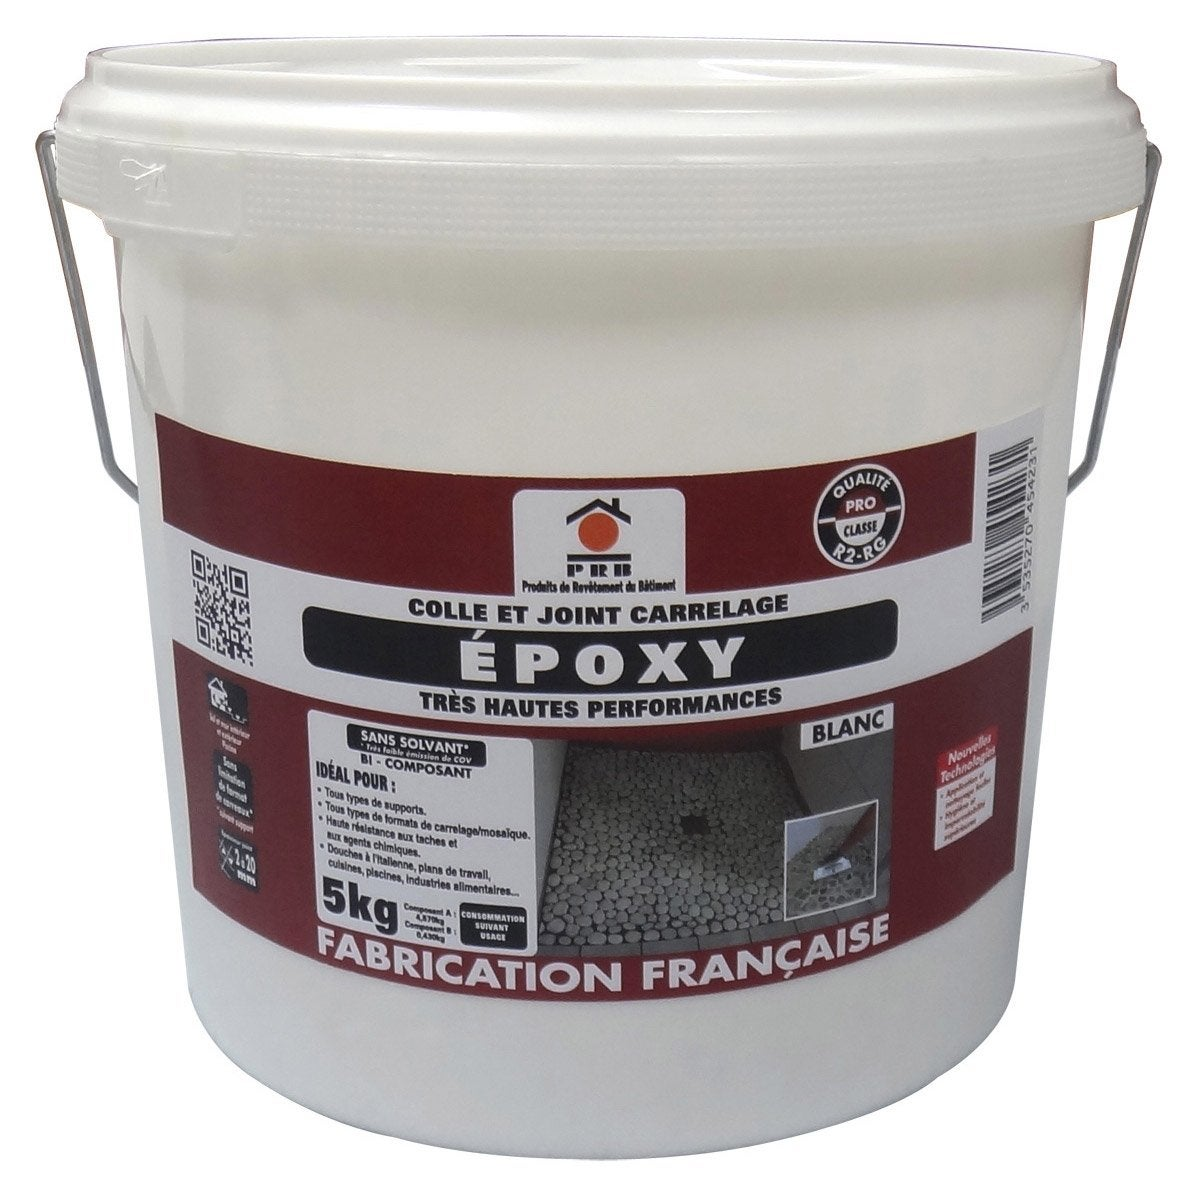 Colle et joint epoxy haute performance pour carrelage mosa que prb blan - Leroy merlin colle carrelage ...